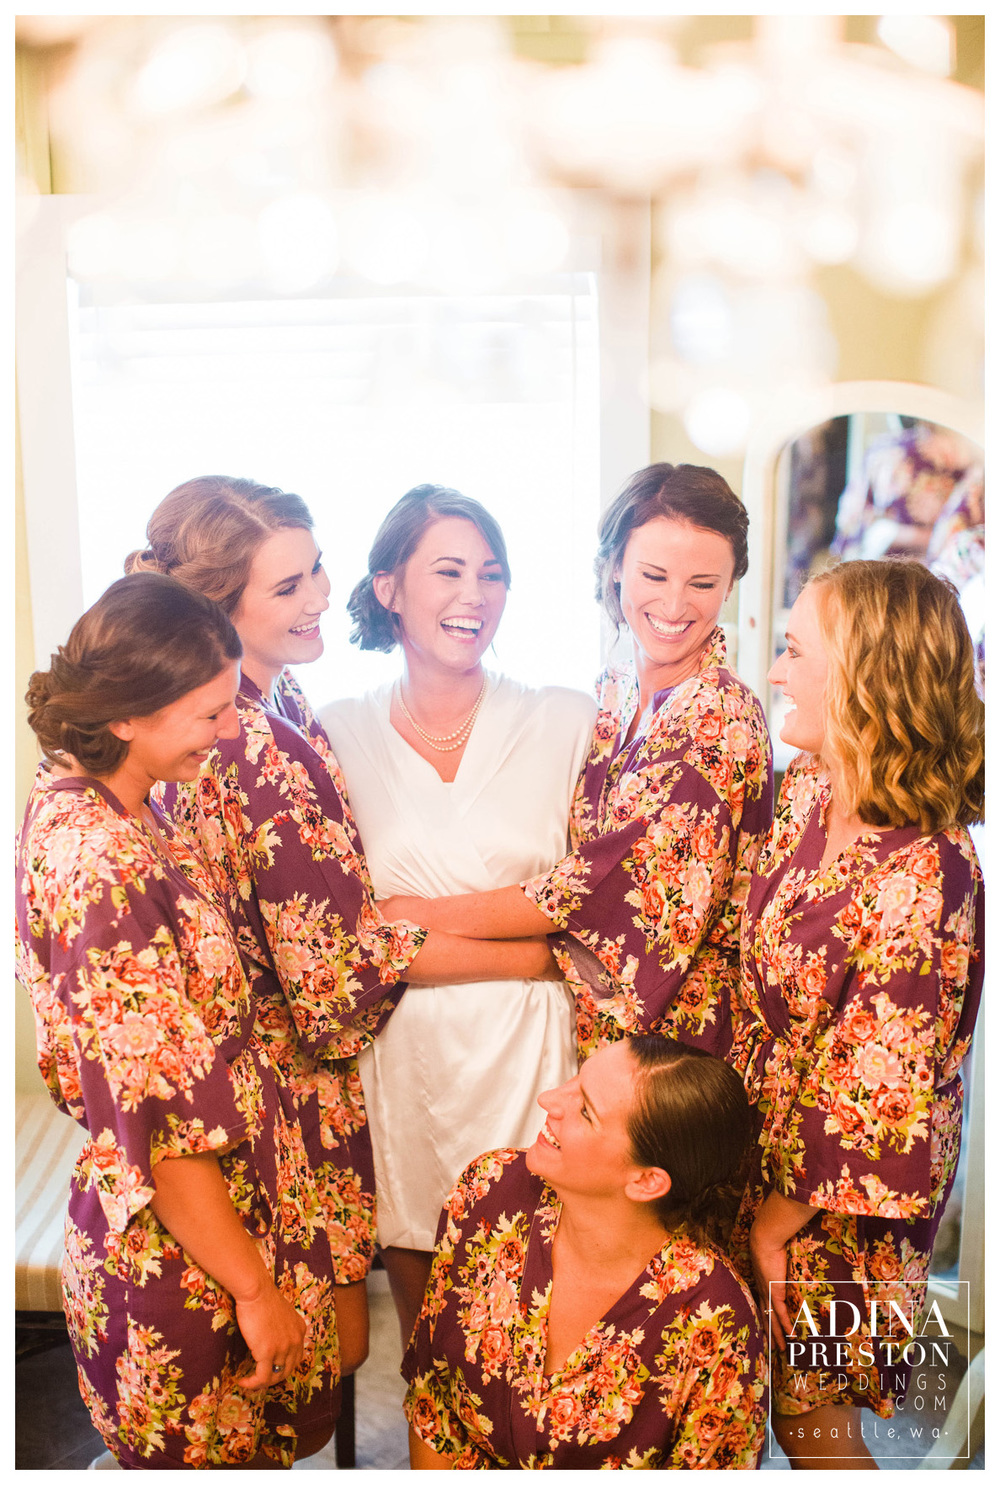 Tegan_Adina+Preston+Weddings_Seattle+Weddings_Seattle+Wedding+Photographer.jpg